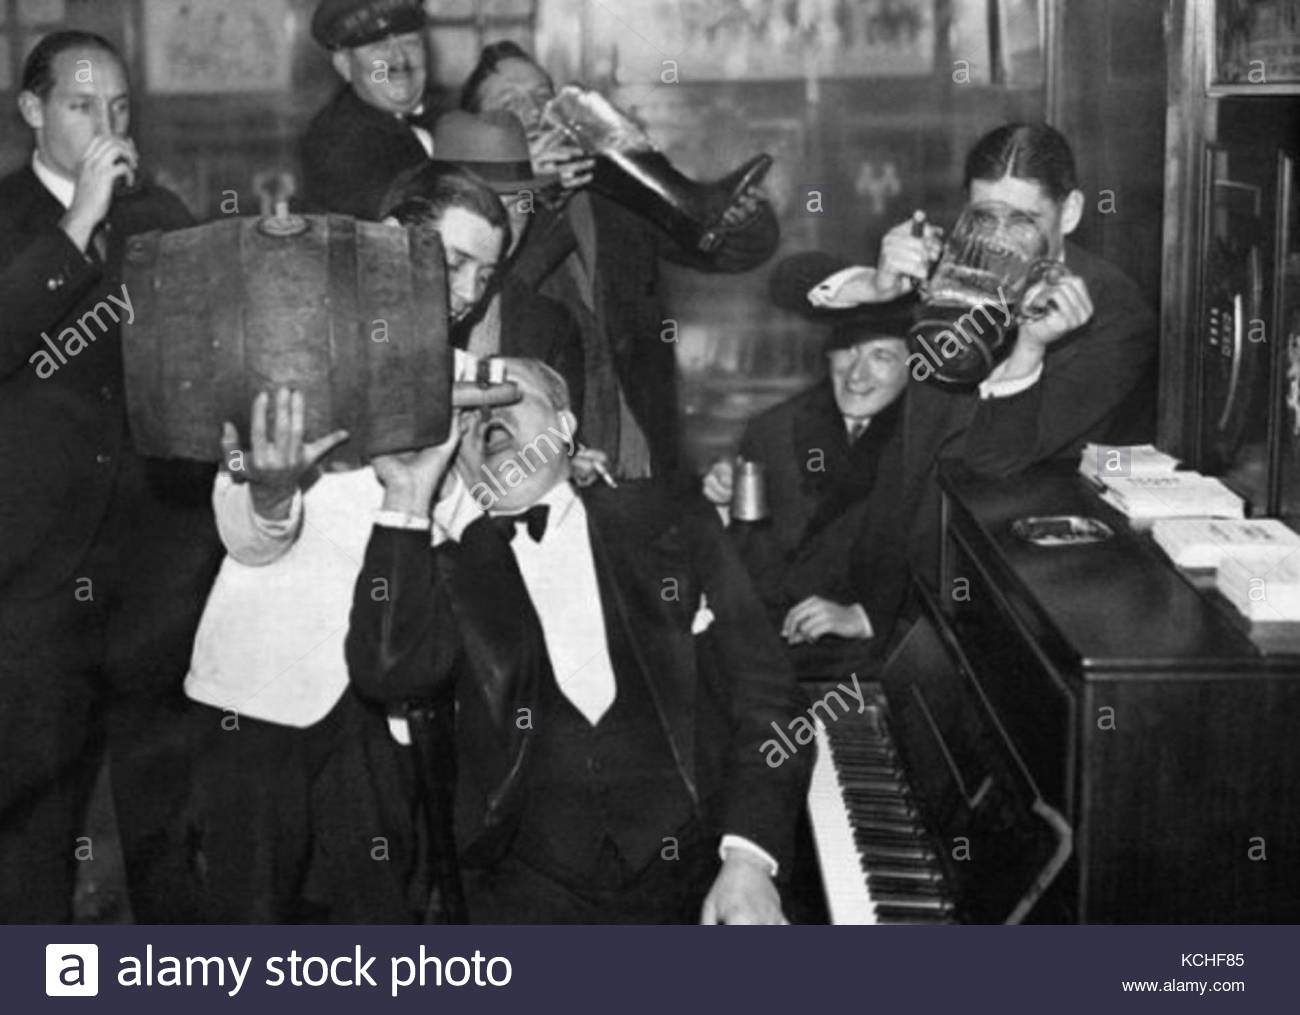 Prohibition in USA in vintage photography - Stock Image